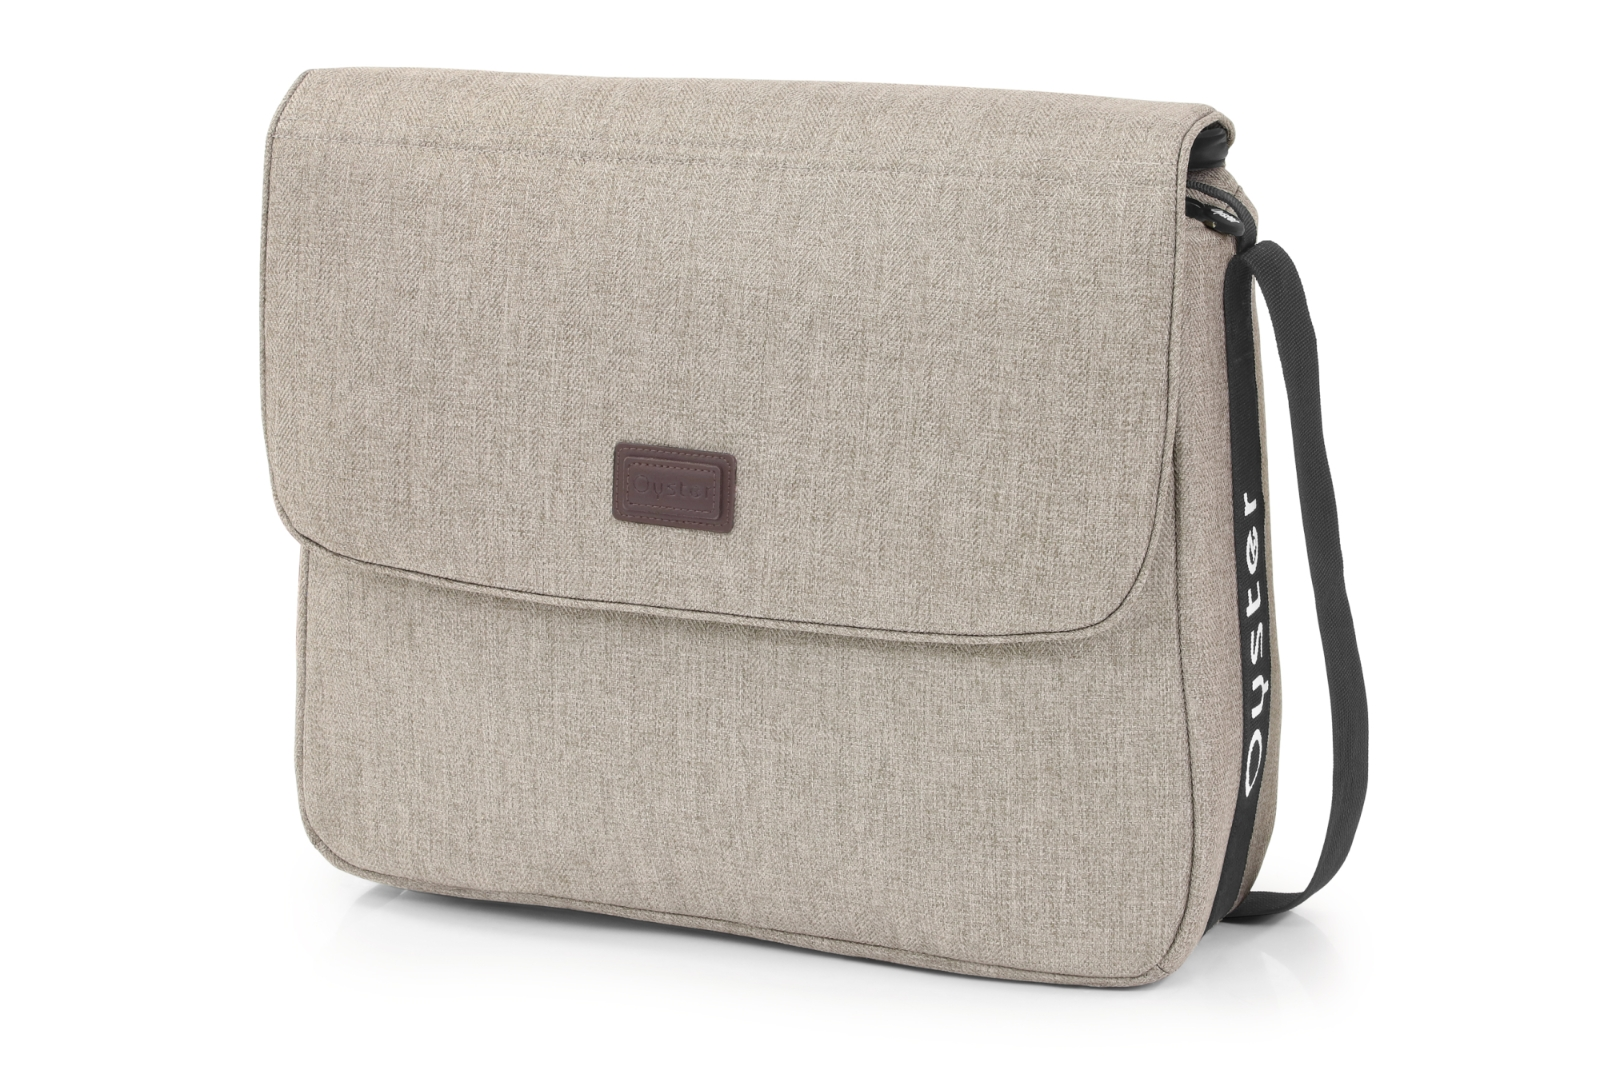 Babystyle Oyster 3 Changing Bag - Pebble